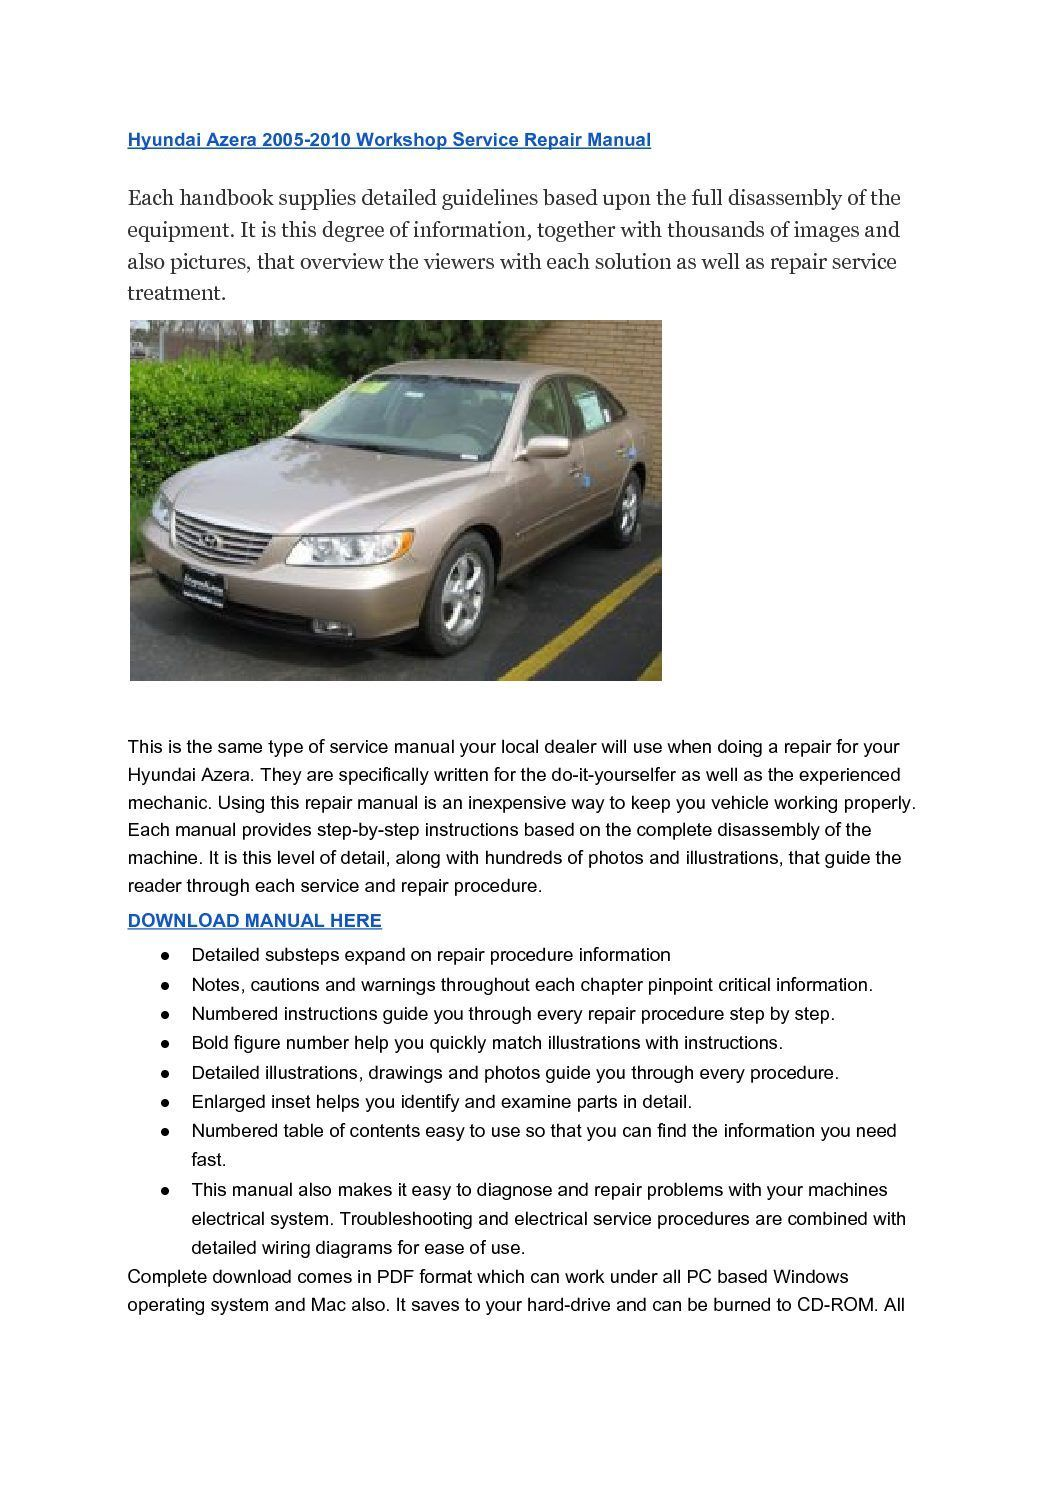 assistance, Hyundai Azera 2005-2010 Workshop Service Repair Manual , Hyundai  Azera 2005-2010 Workshop Service Repair Manual,Notes, warns as well as  cautions ...